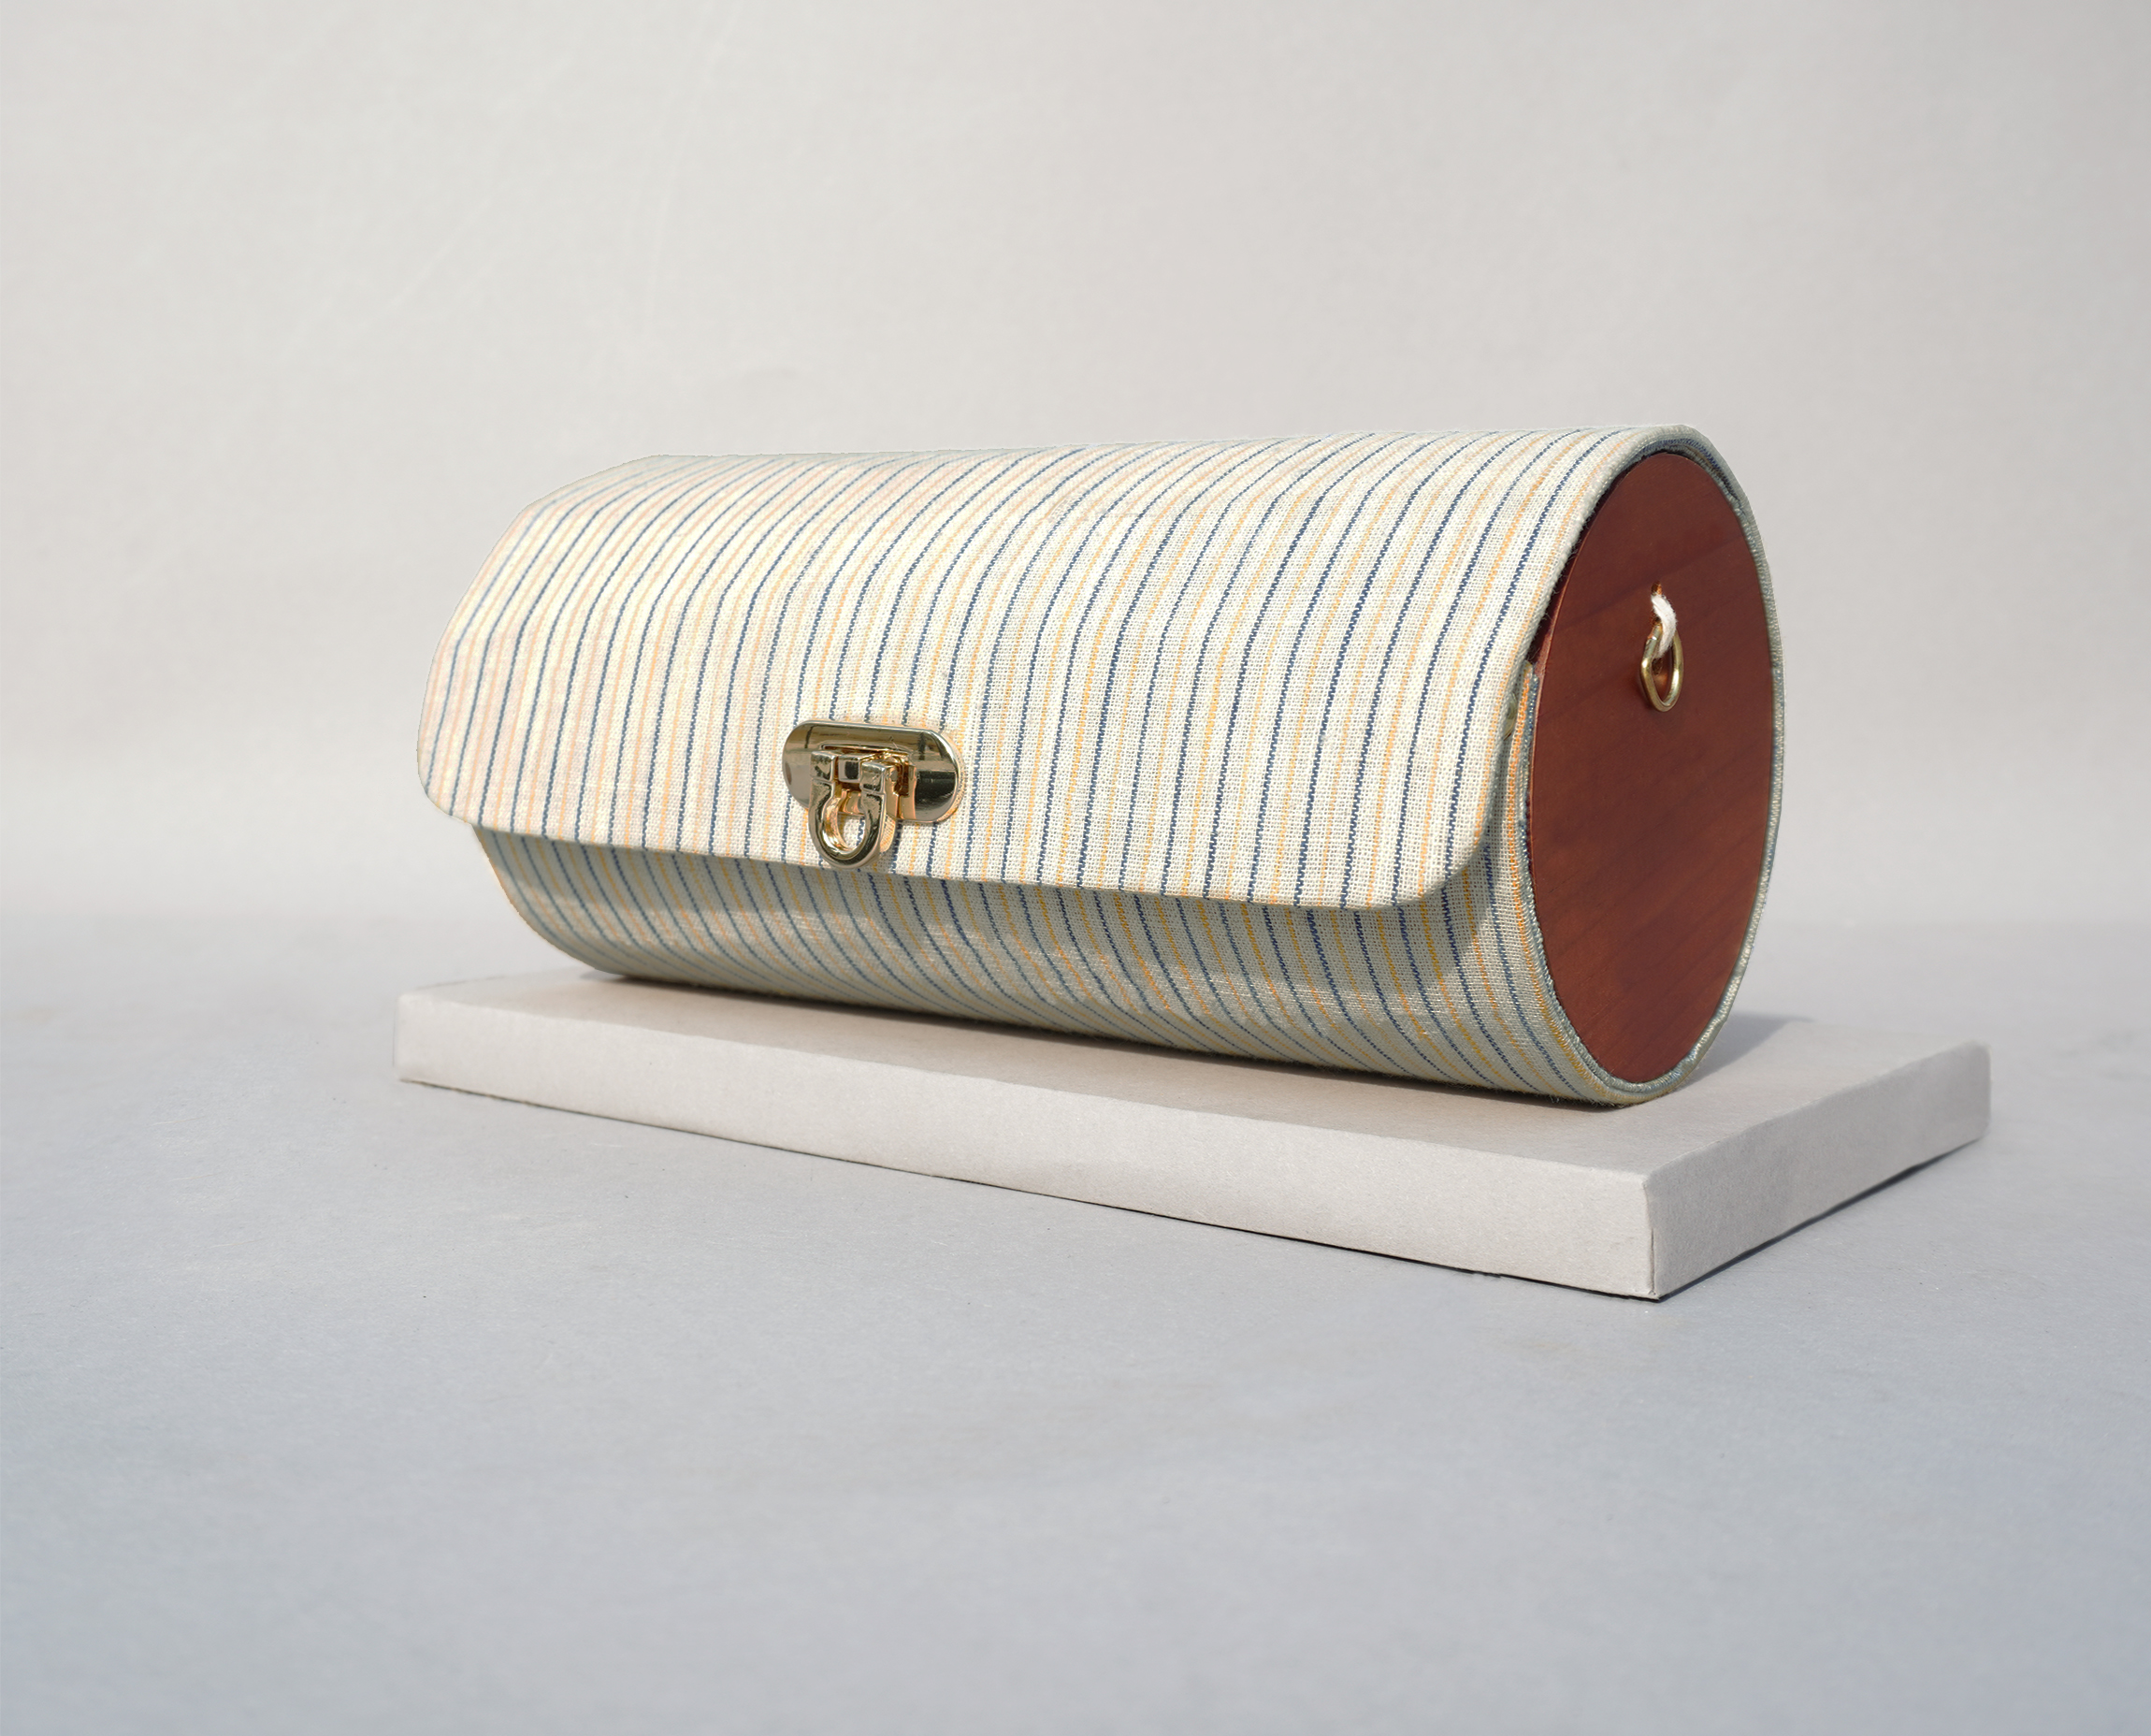 This Cylindrical Khadi Bag is a slow fashion handcrafted accessory for your everyday carry. It is made of hand-spun/hand-woven organic cotton and finished with wood and elegant hardware that compliments your casual as well as fusion wear. It comes with two detachable belts - a cotton strap made from the same fabric and a metal chain to style it as a Shoulder or a Cross Body Accessory. You can also give it for an easy wash (Dry clean only).